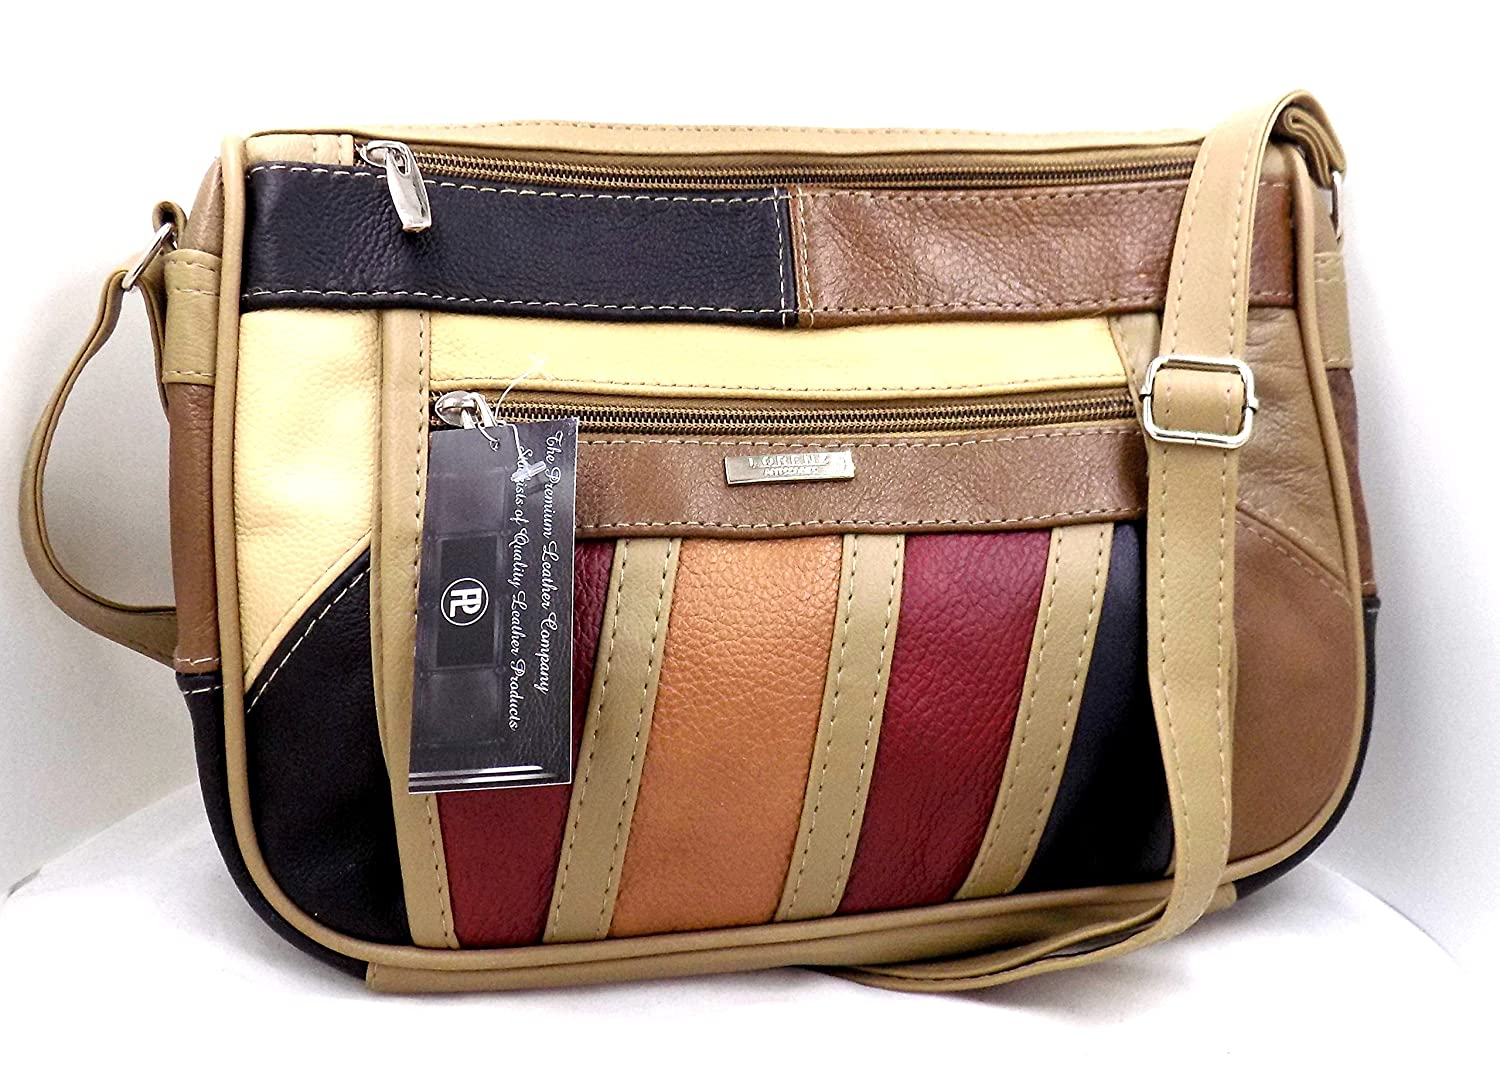 Ladies Soft Leather Designer Handbags Lots Of Compartments Genuine MULTICOLOUR With Purse Amazoncouk Shoes Bags